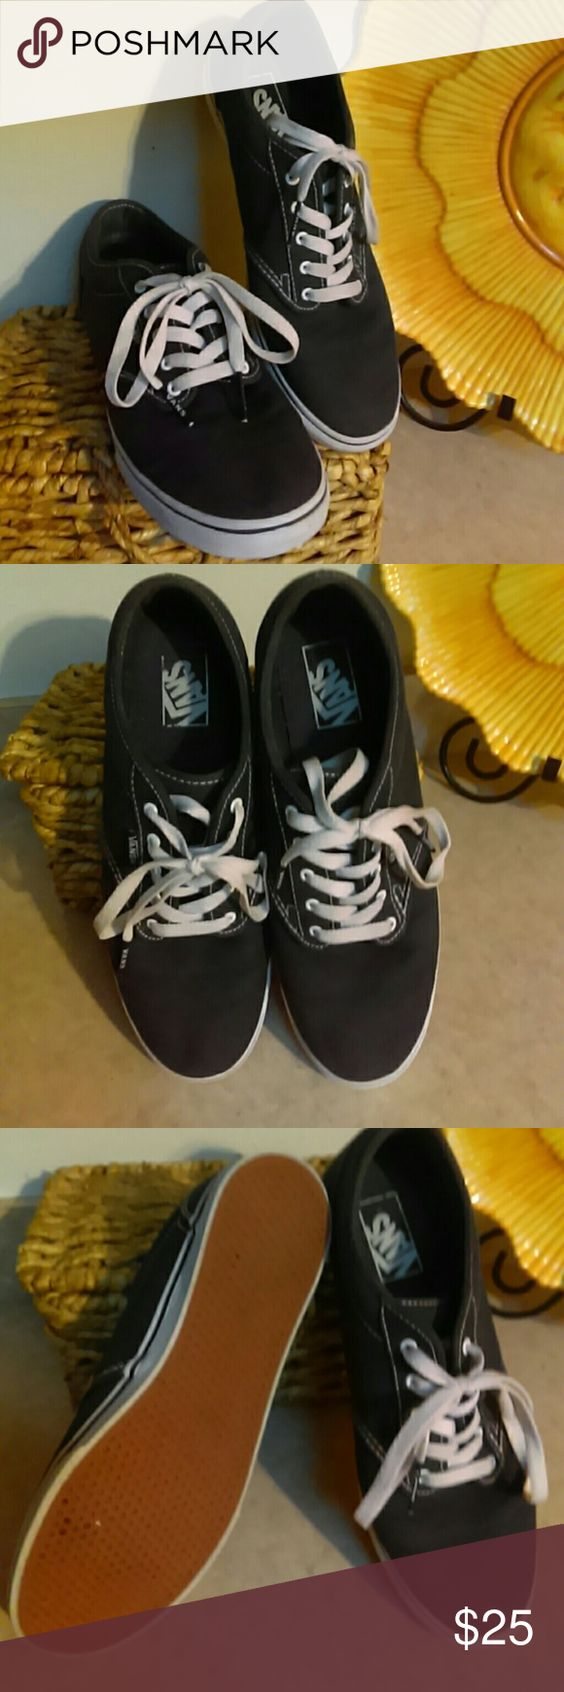 Size 10 Womens Low Pro Vans Size 10 Womens low pro navy blue Vans excellent condition with no wear on bottoms Vans Shoes Sneakers